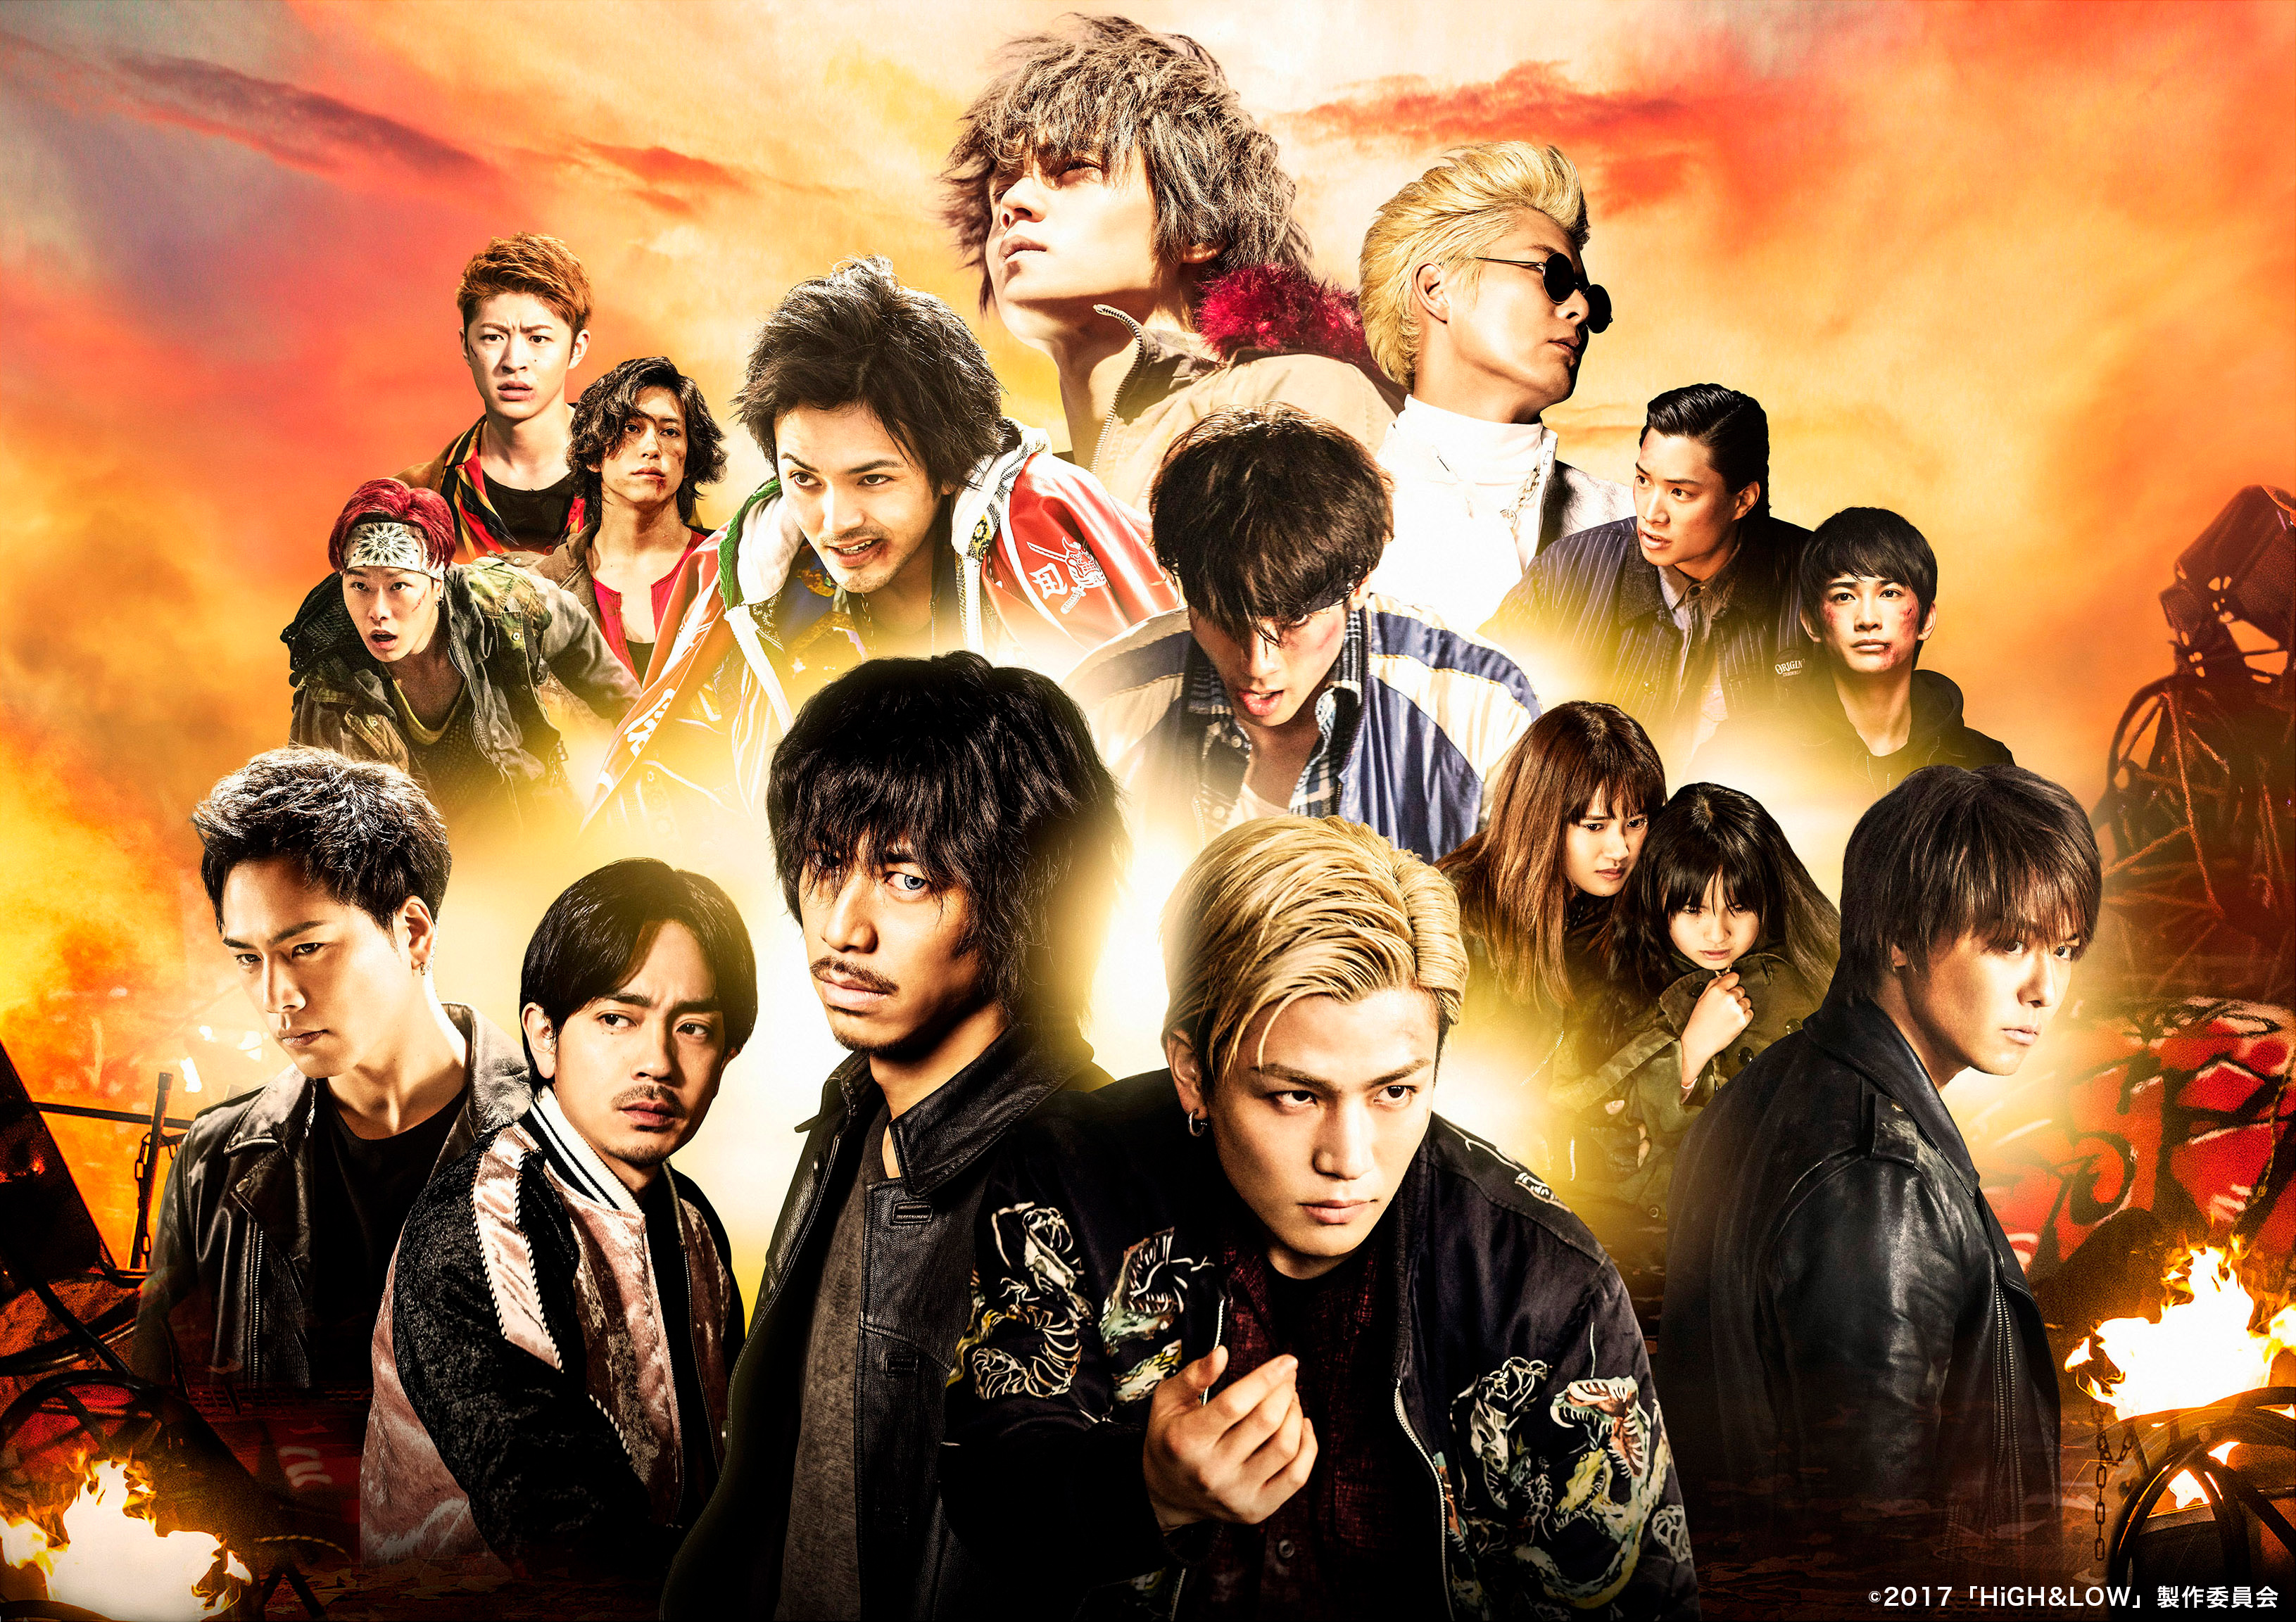 「HiGH&LOW THE MOVIE3」の無料フル動画はHulu・amazon prime・Netflixで配信してる?